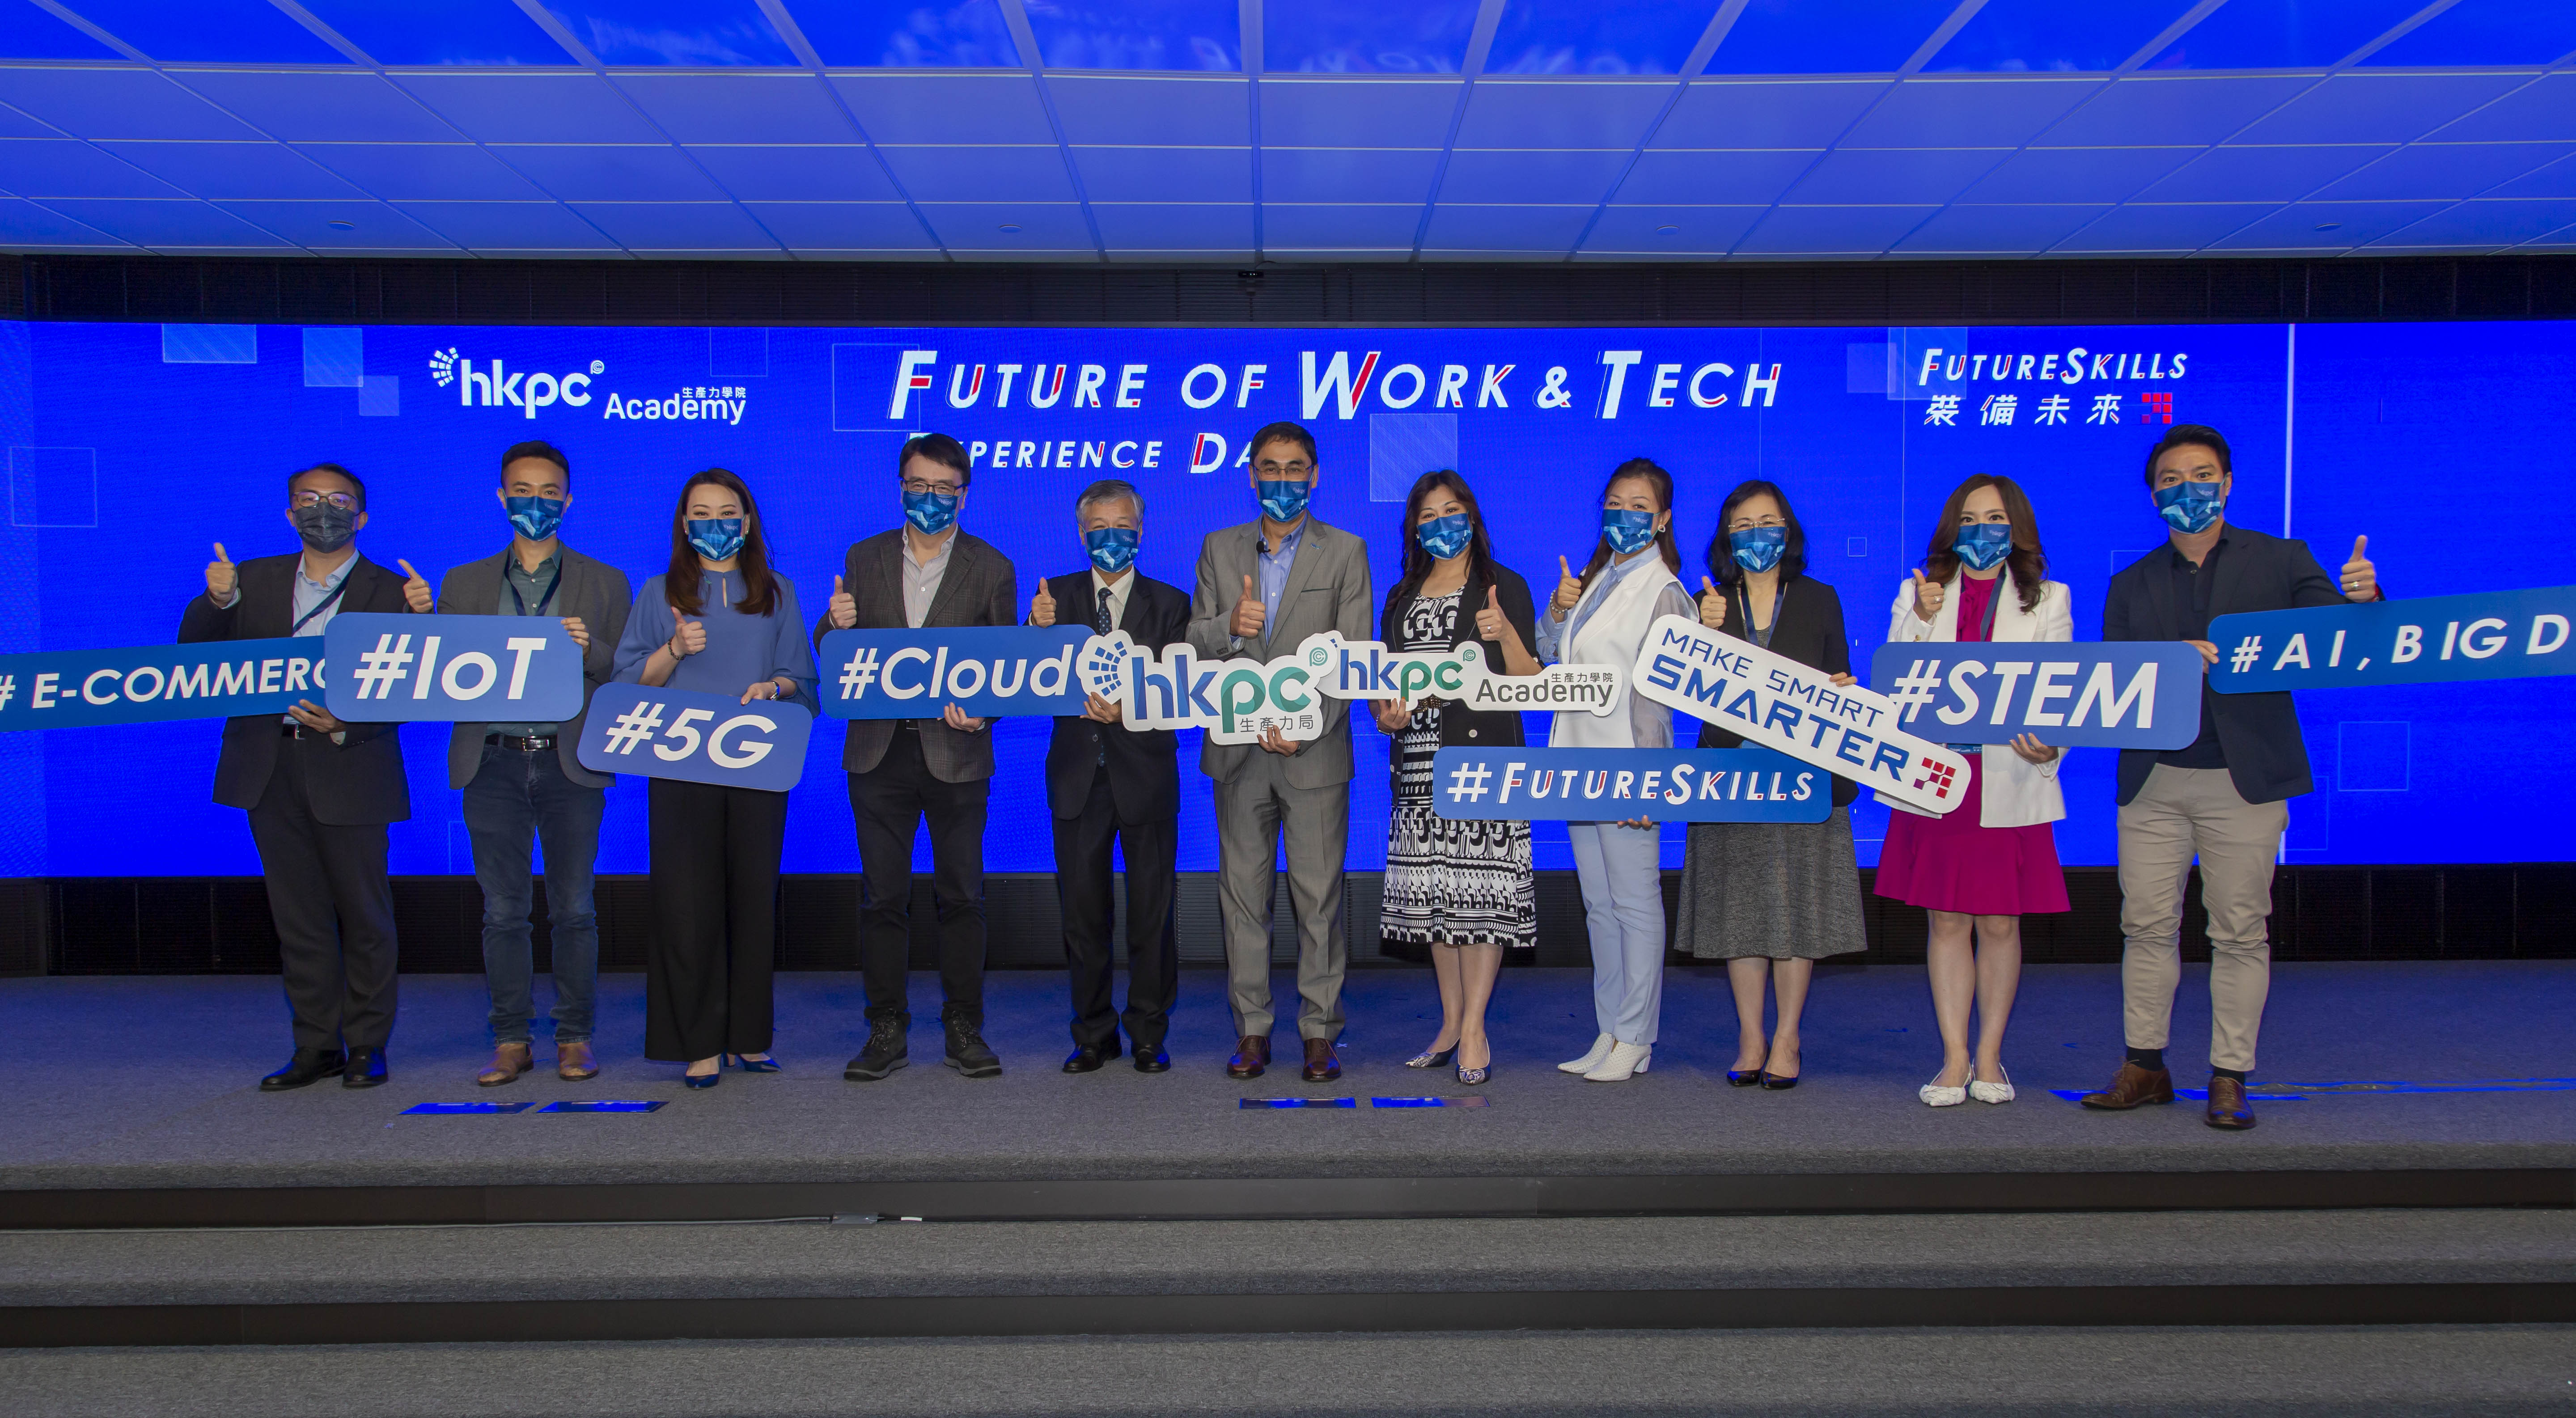 HKPC Launches Future of Work  Tech Experience Day